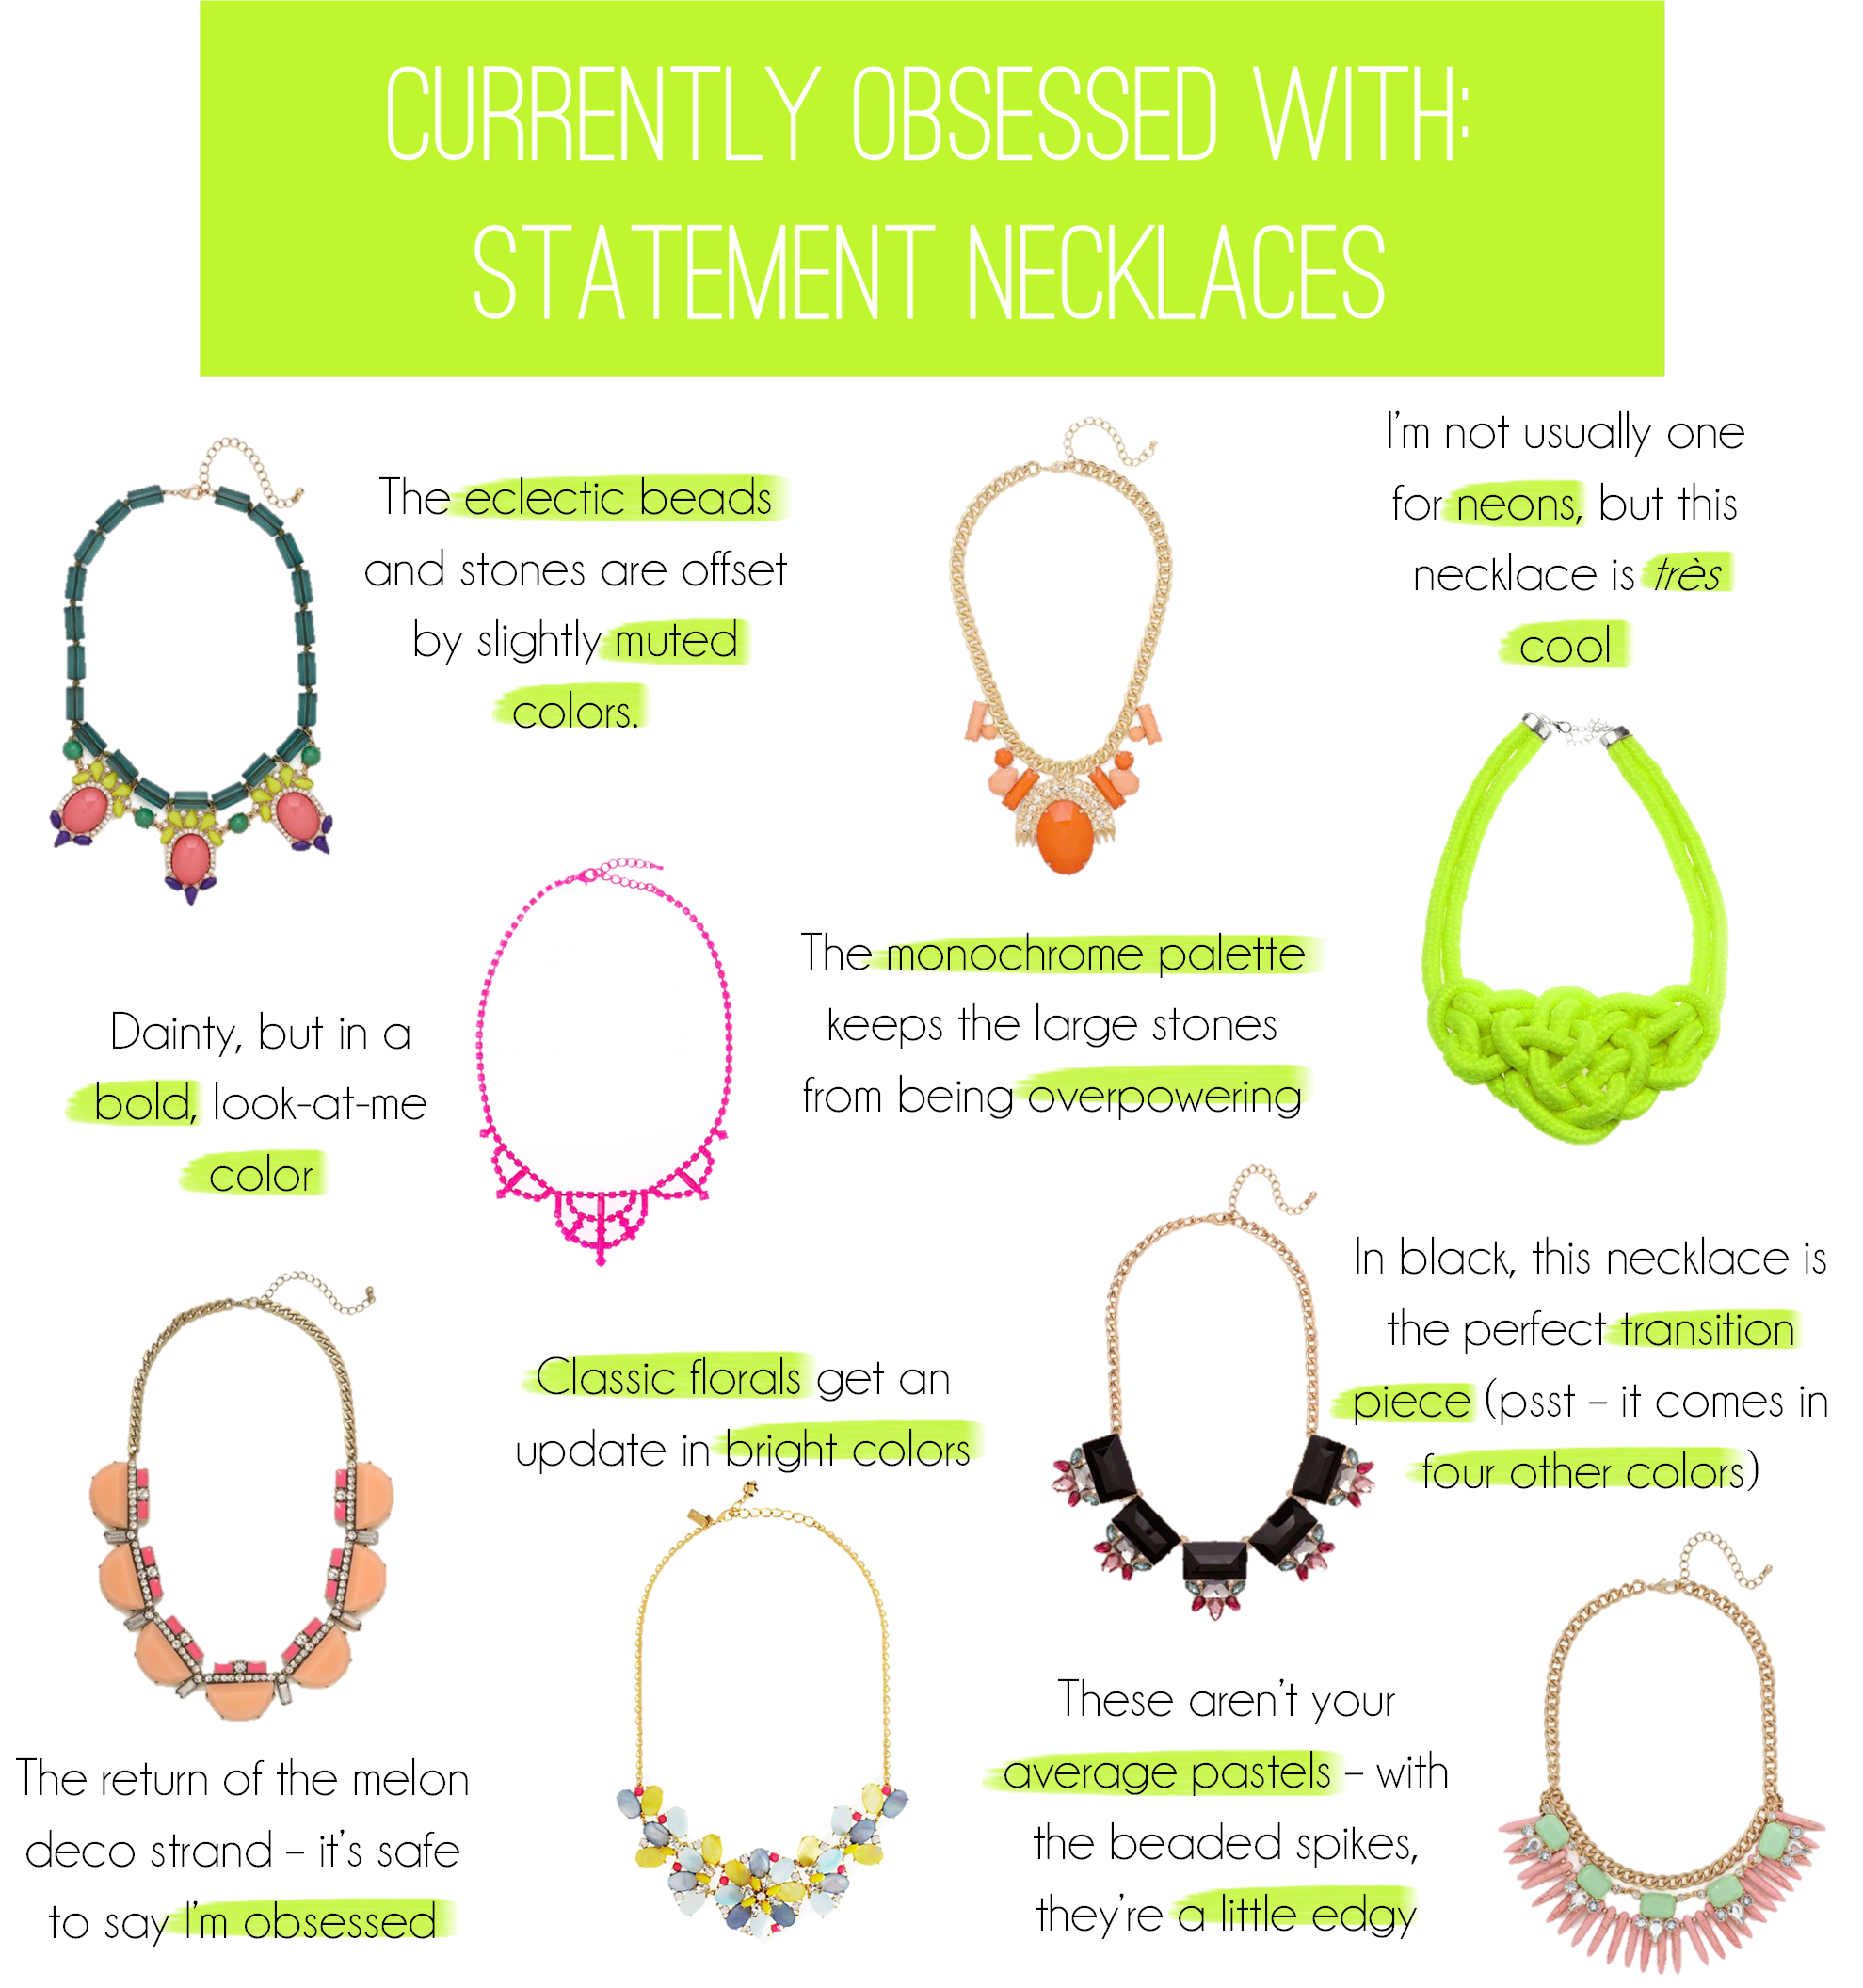 currentlyobsessedwith_statementnecklaces